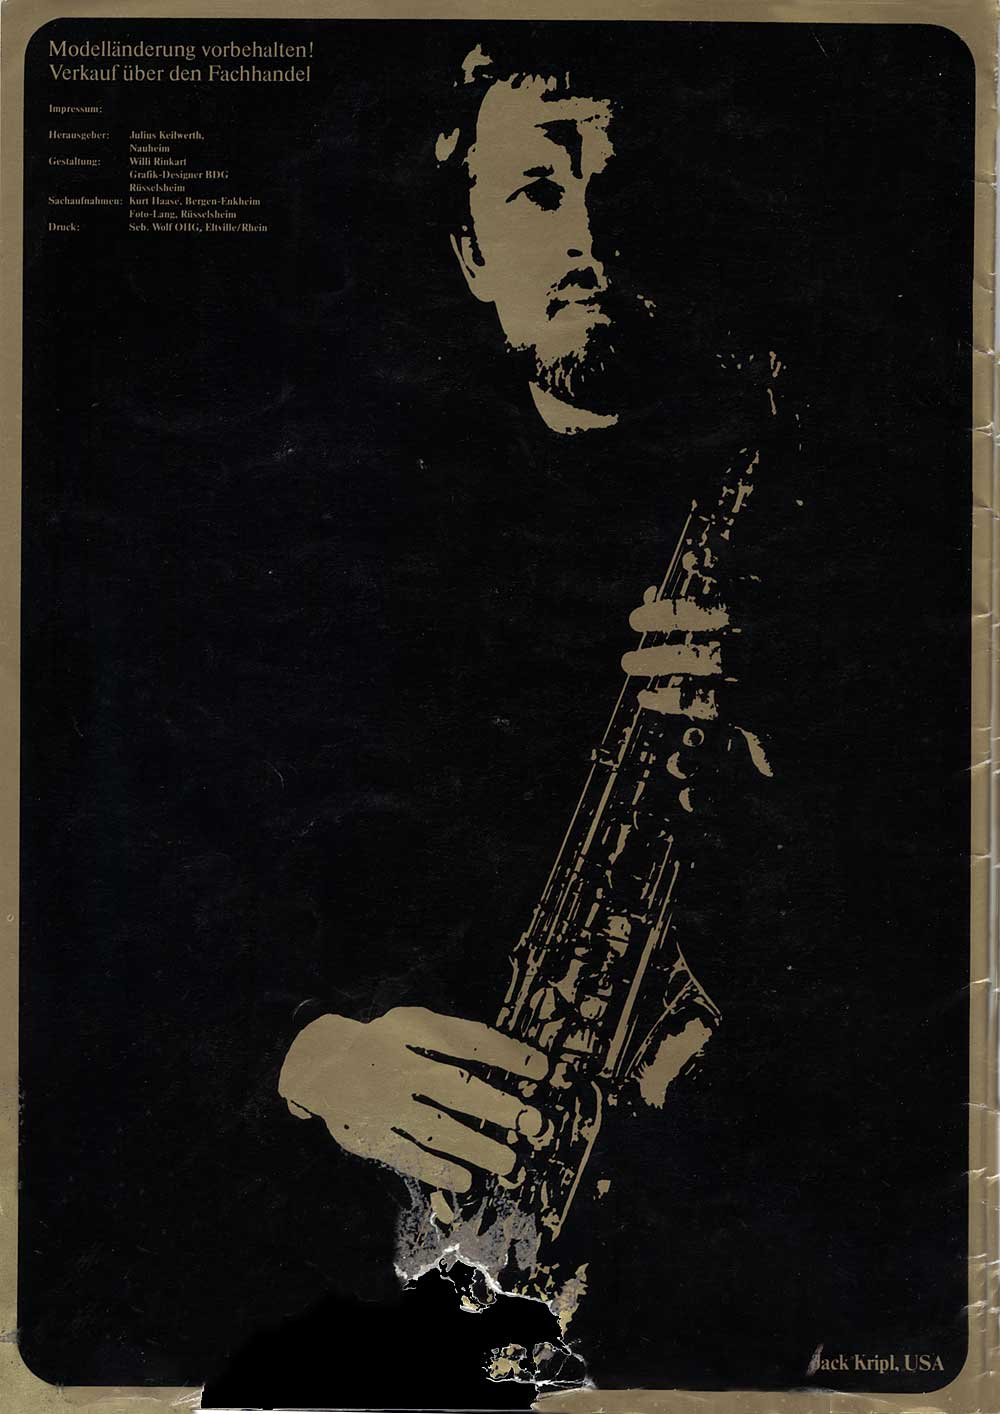 Julius Keilwerth, vintage catalogue, 1979, back cover, black, gold, saxophone player